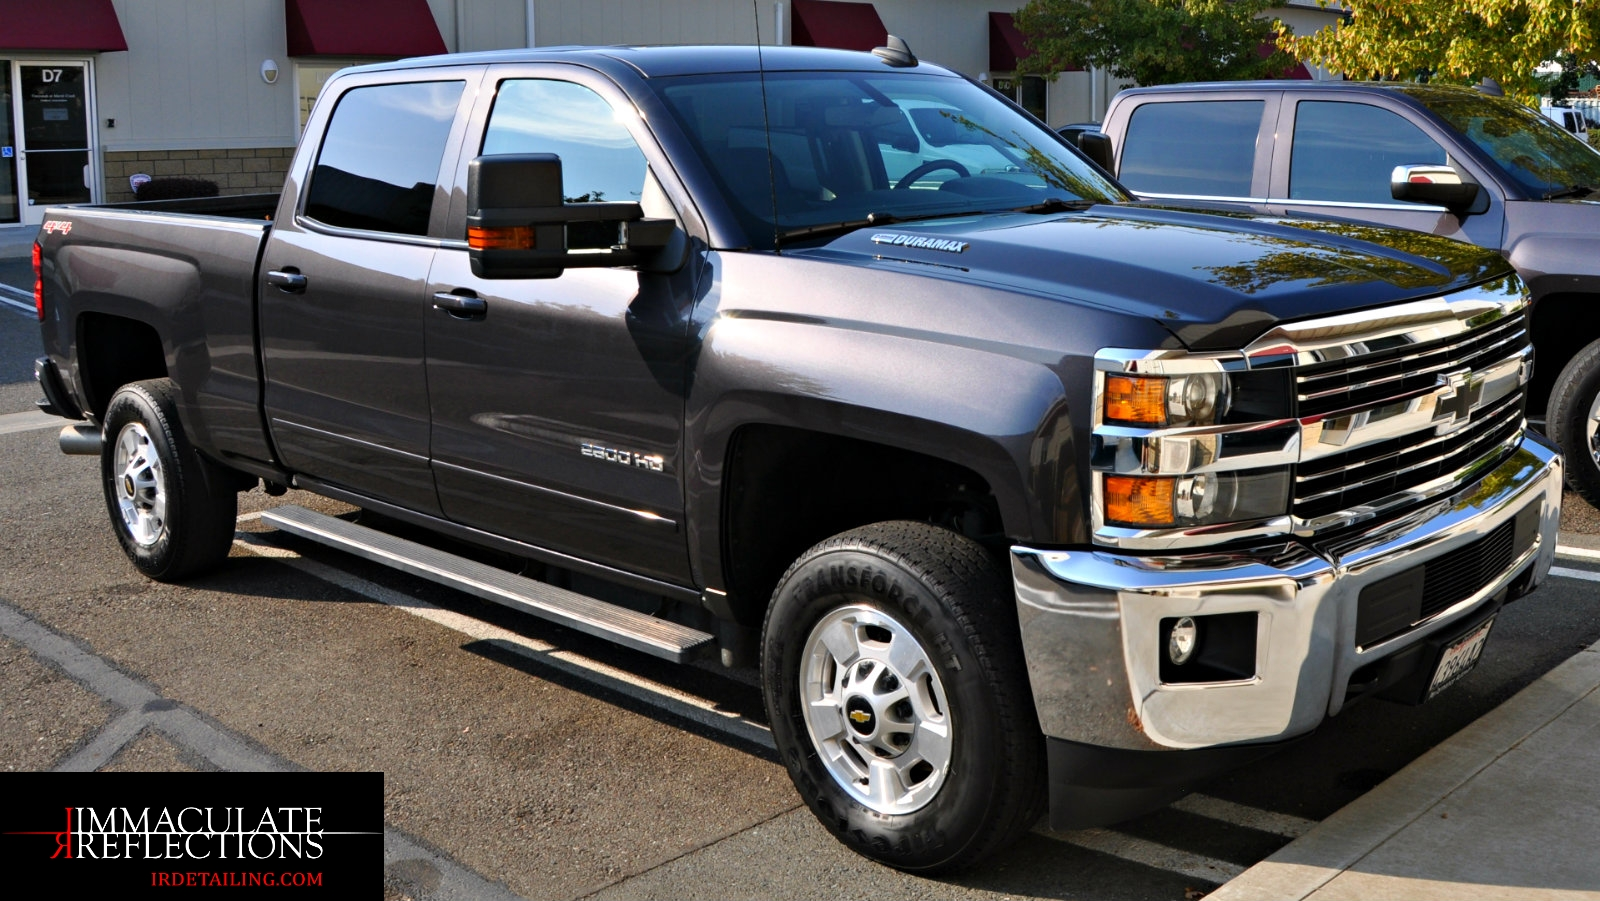 This Chevy Silverado is now as pretty as she is rugged thanks to an Automotive Paint Correction by Immaculate Reflections of Brentwood.